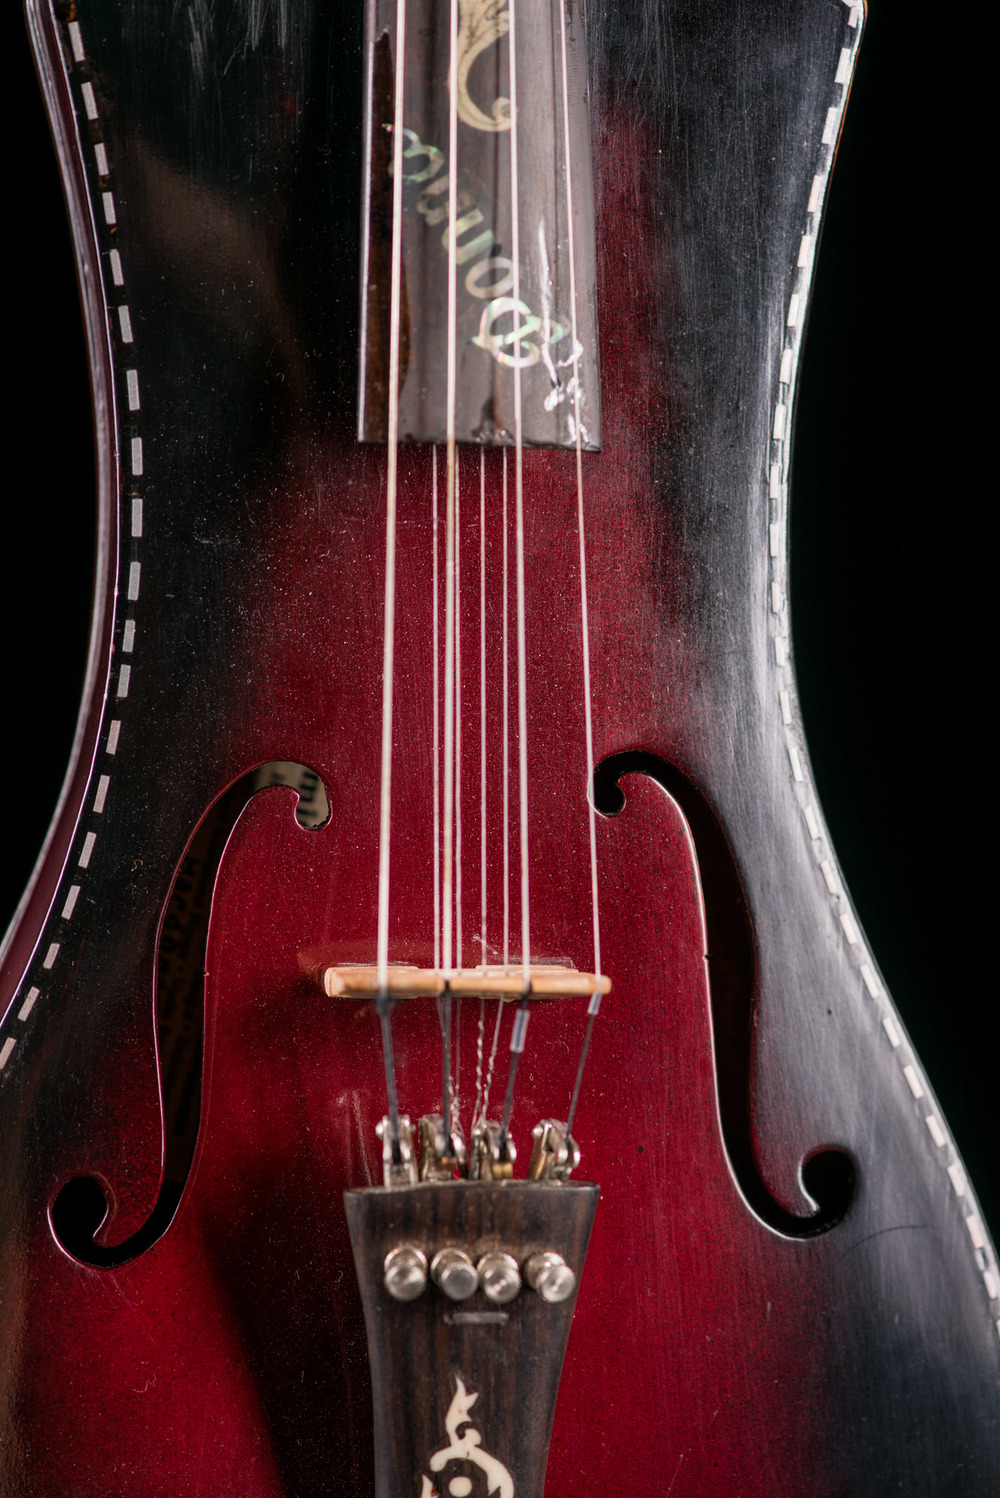 An 8-string fiddle with a lion's head carved where the scroll should be, a creation of 90 year old Elliot Smith from Jasper, Arkansas.